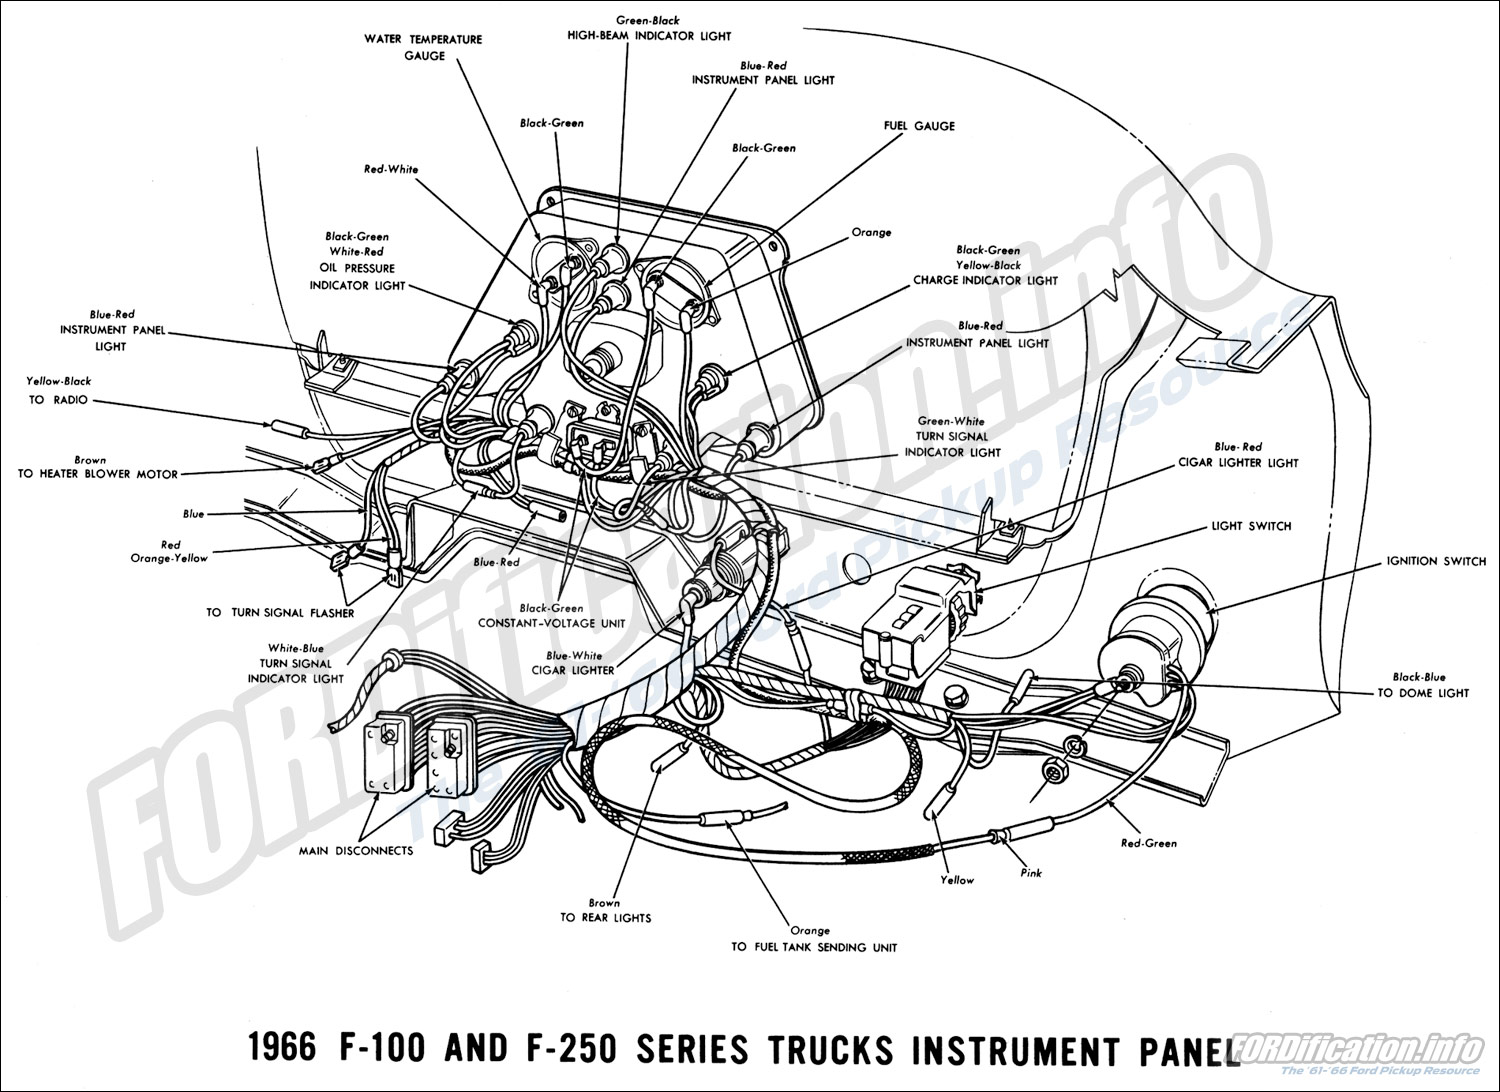 66 f250 instrument cluster diagram - ford truck ... 66 ford wiring diagram 66 mustang wiring diagram for dash